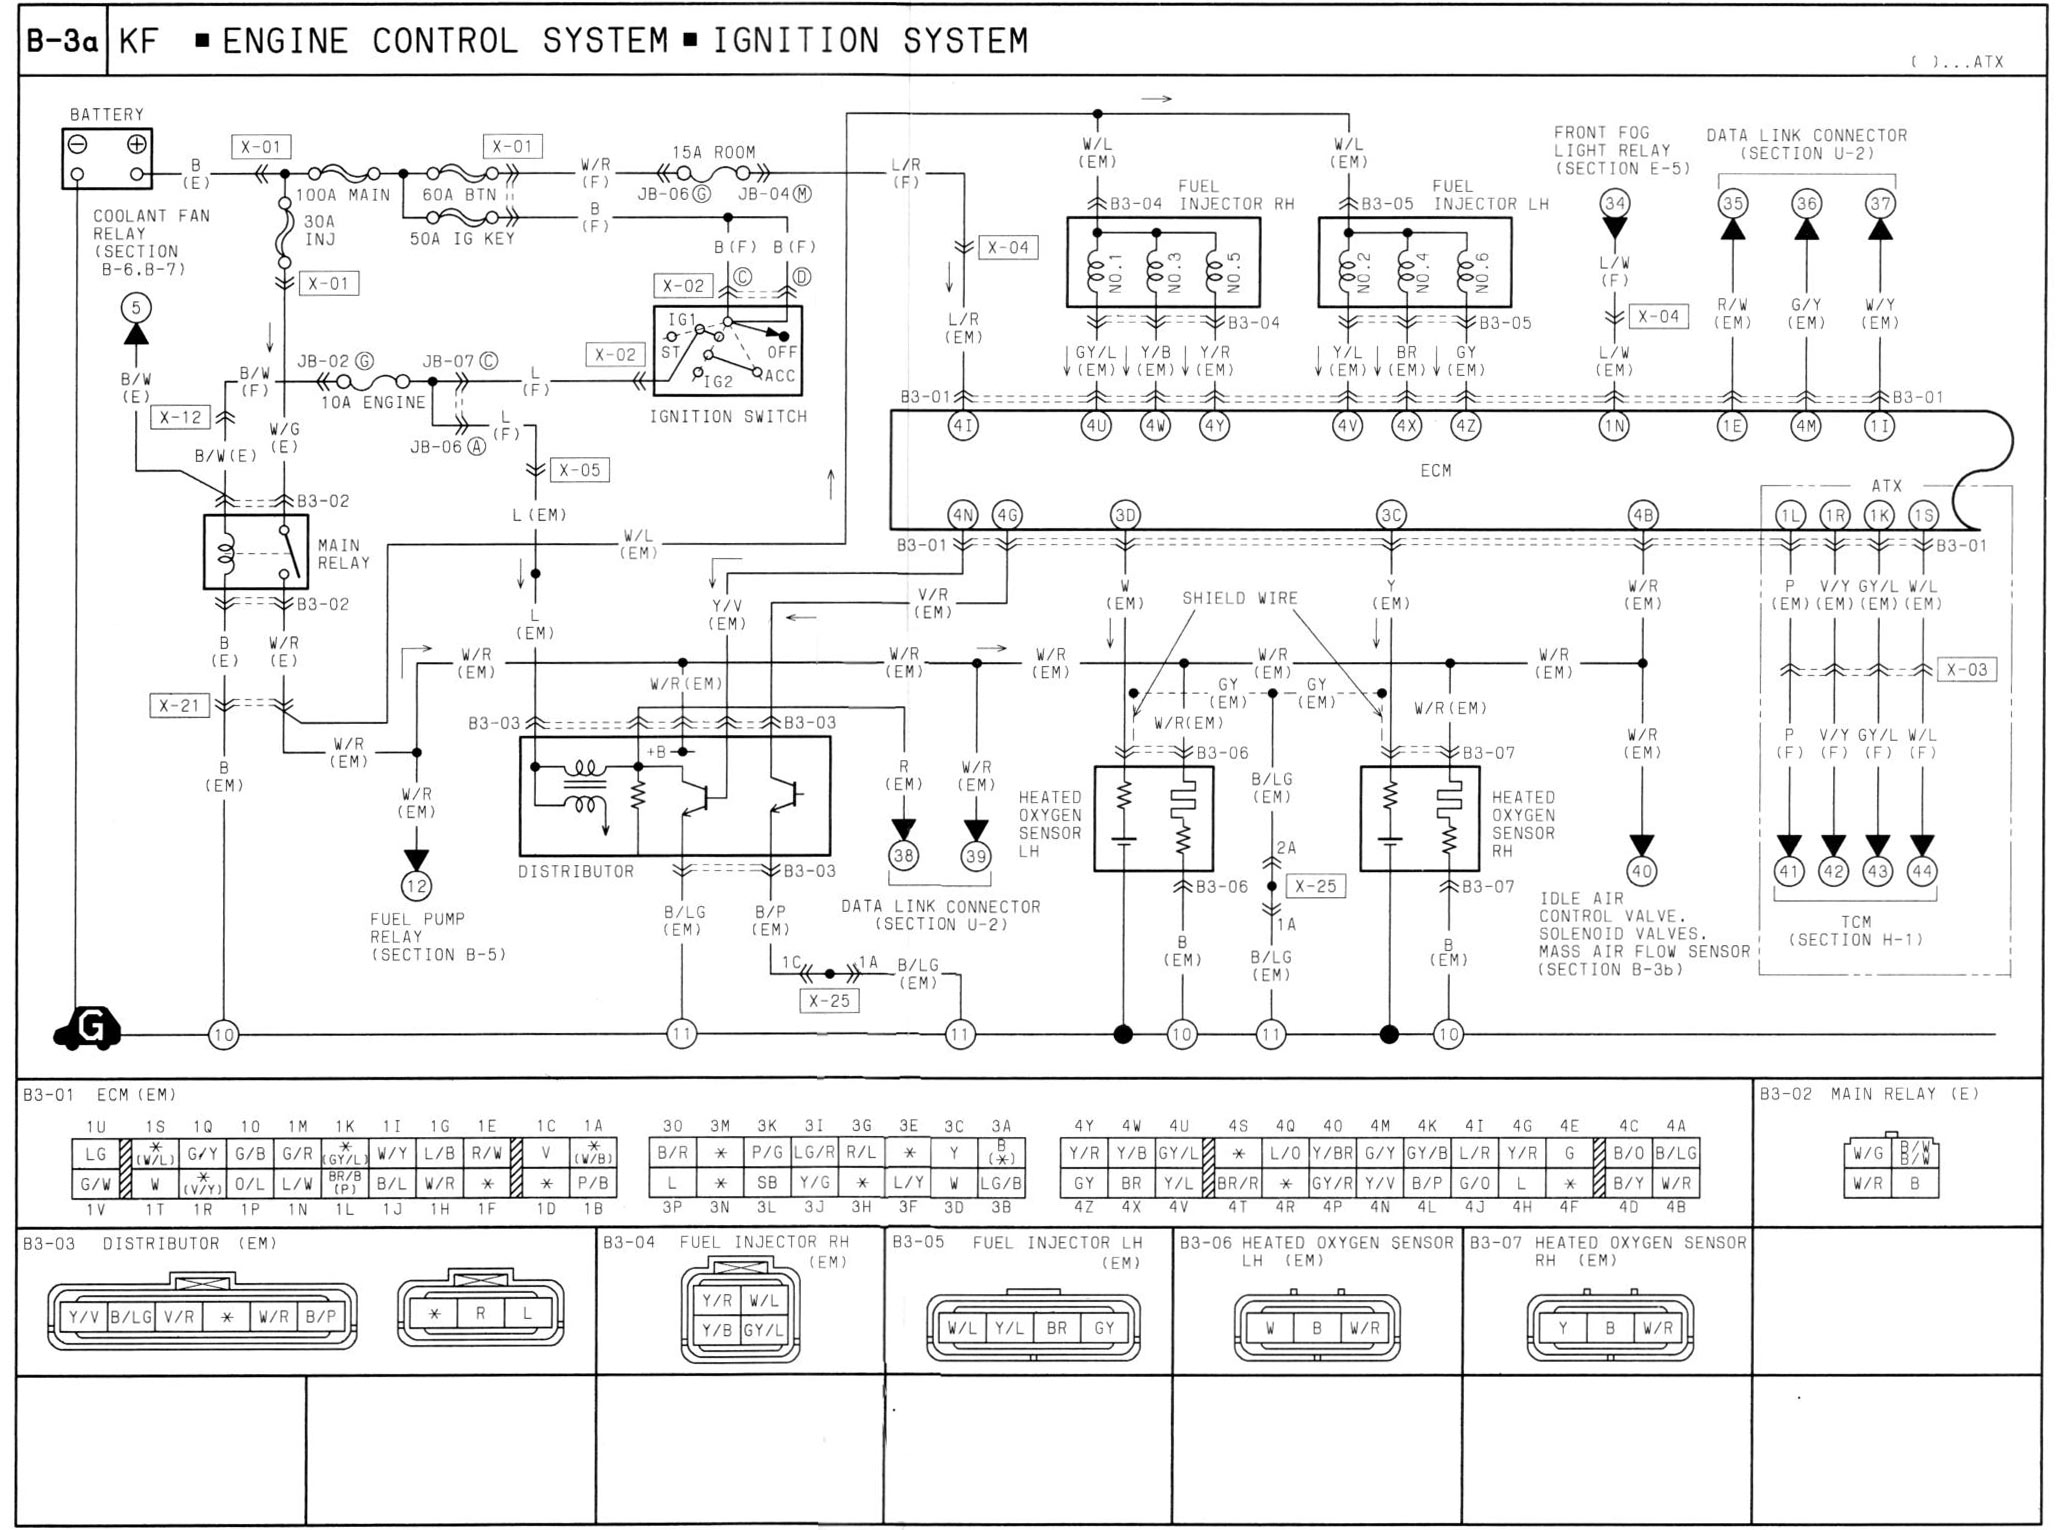 1990 Mazda Miata Electrical Schematic Manual Of Wiring Diagram Softail 323 Charging System Trusted Rh Dafpods Co